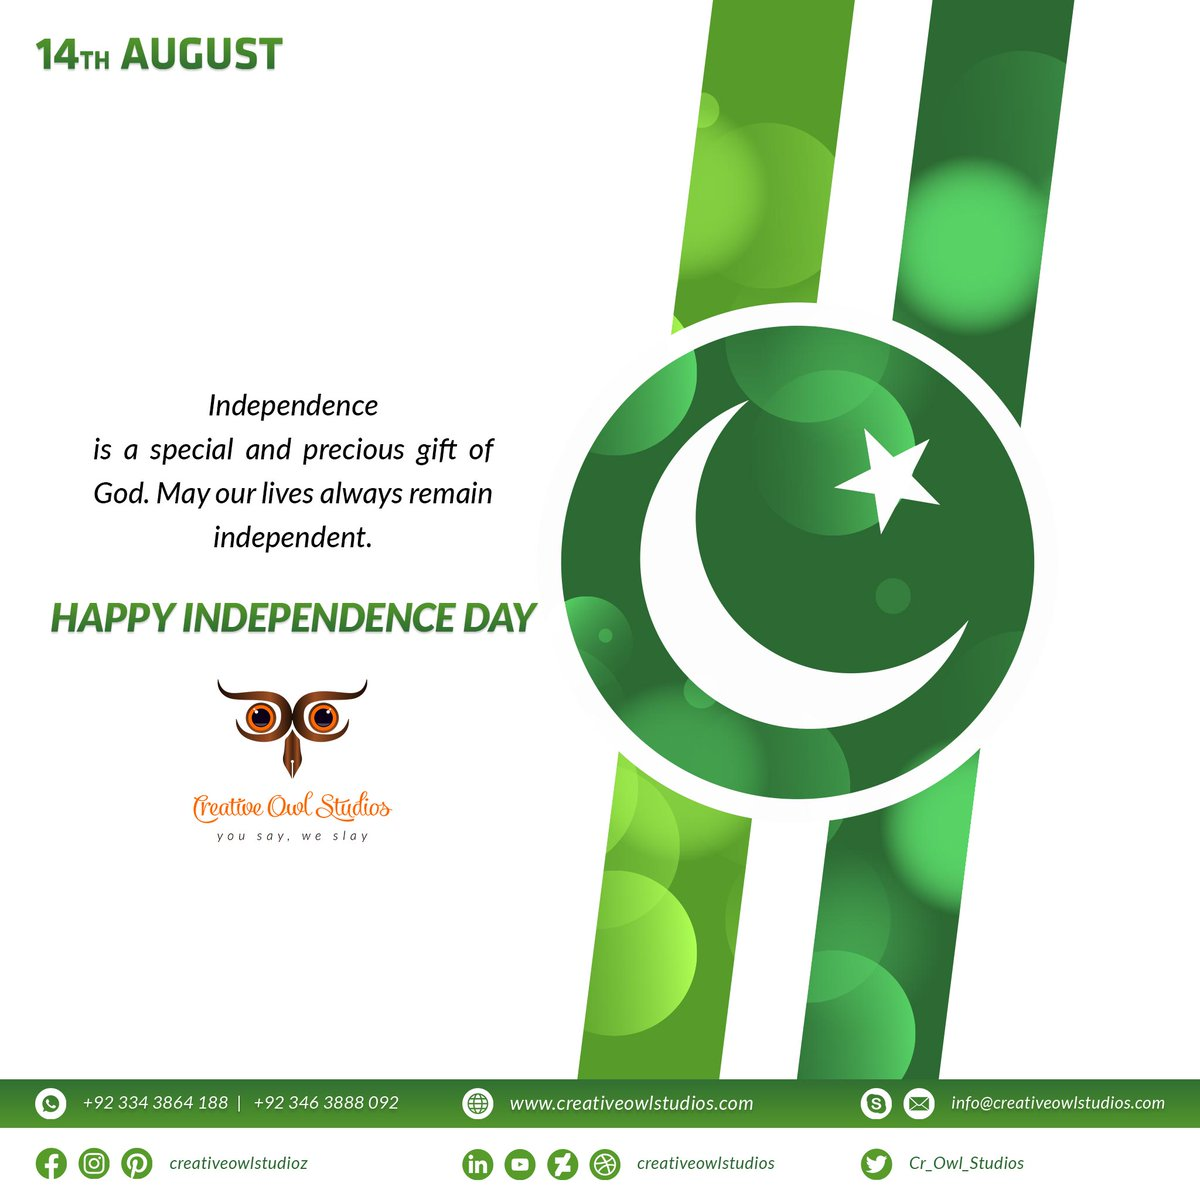 Happy Independence Day to all of you out there. Stay blessed 😇 . #independenceday #14thaugust #pakistanzindabad #freedom #independentartist #independence #independencedaycelebration #pakistan #eidwishes #happyindependenceday #graphicsdesign #freedomofspeech #green #pakistanday https://t.co/drgp6w28o1